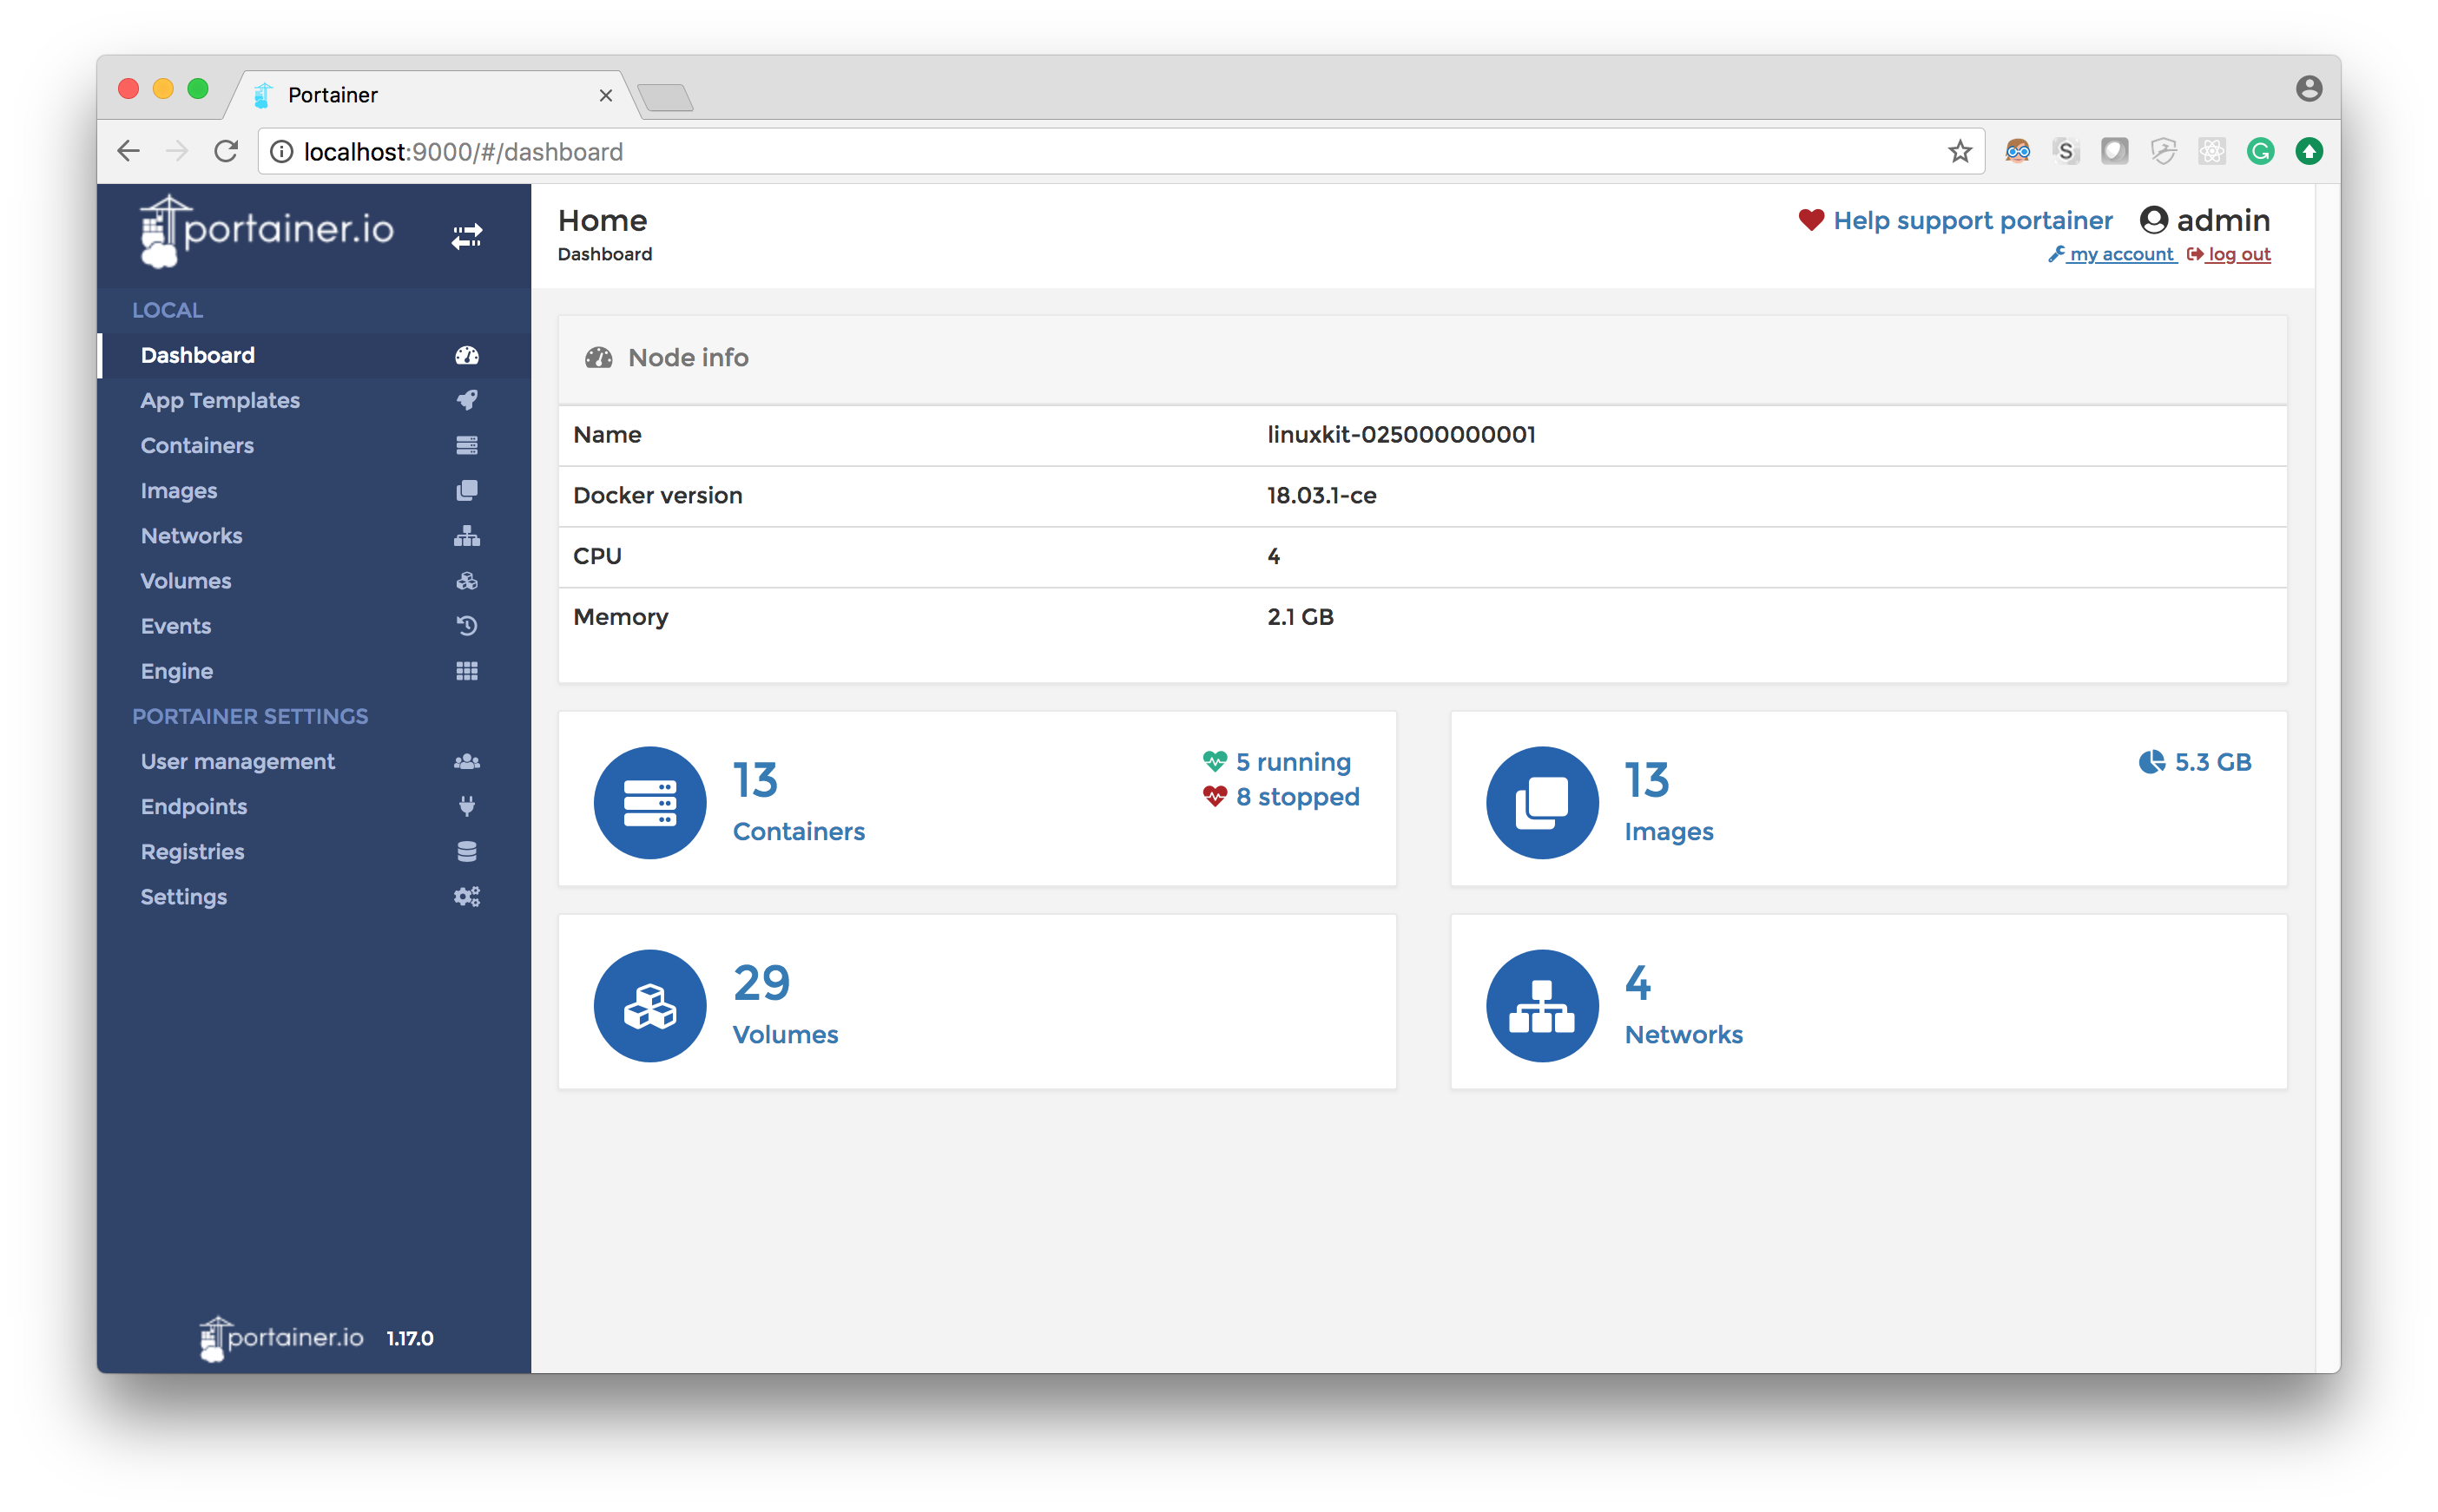 Portainer Dashboard